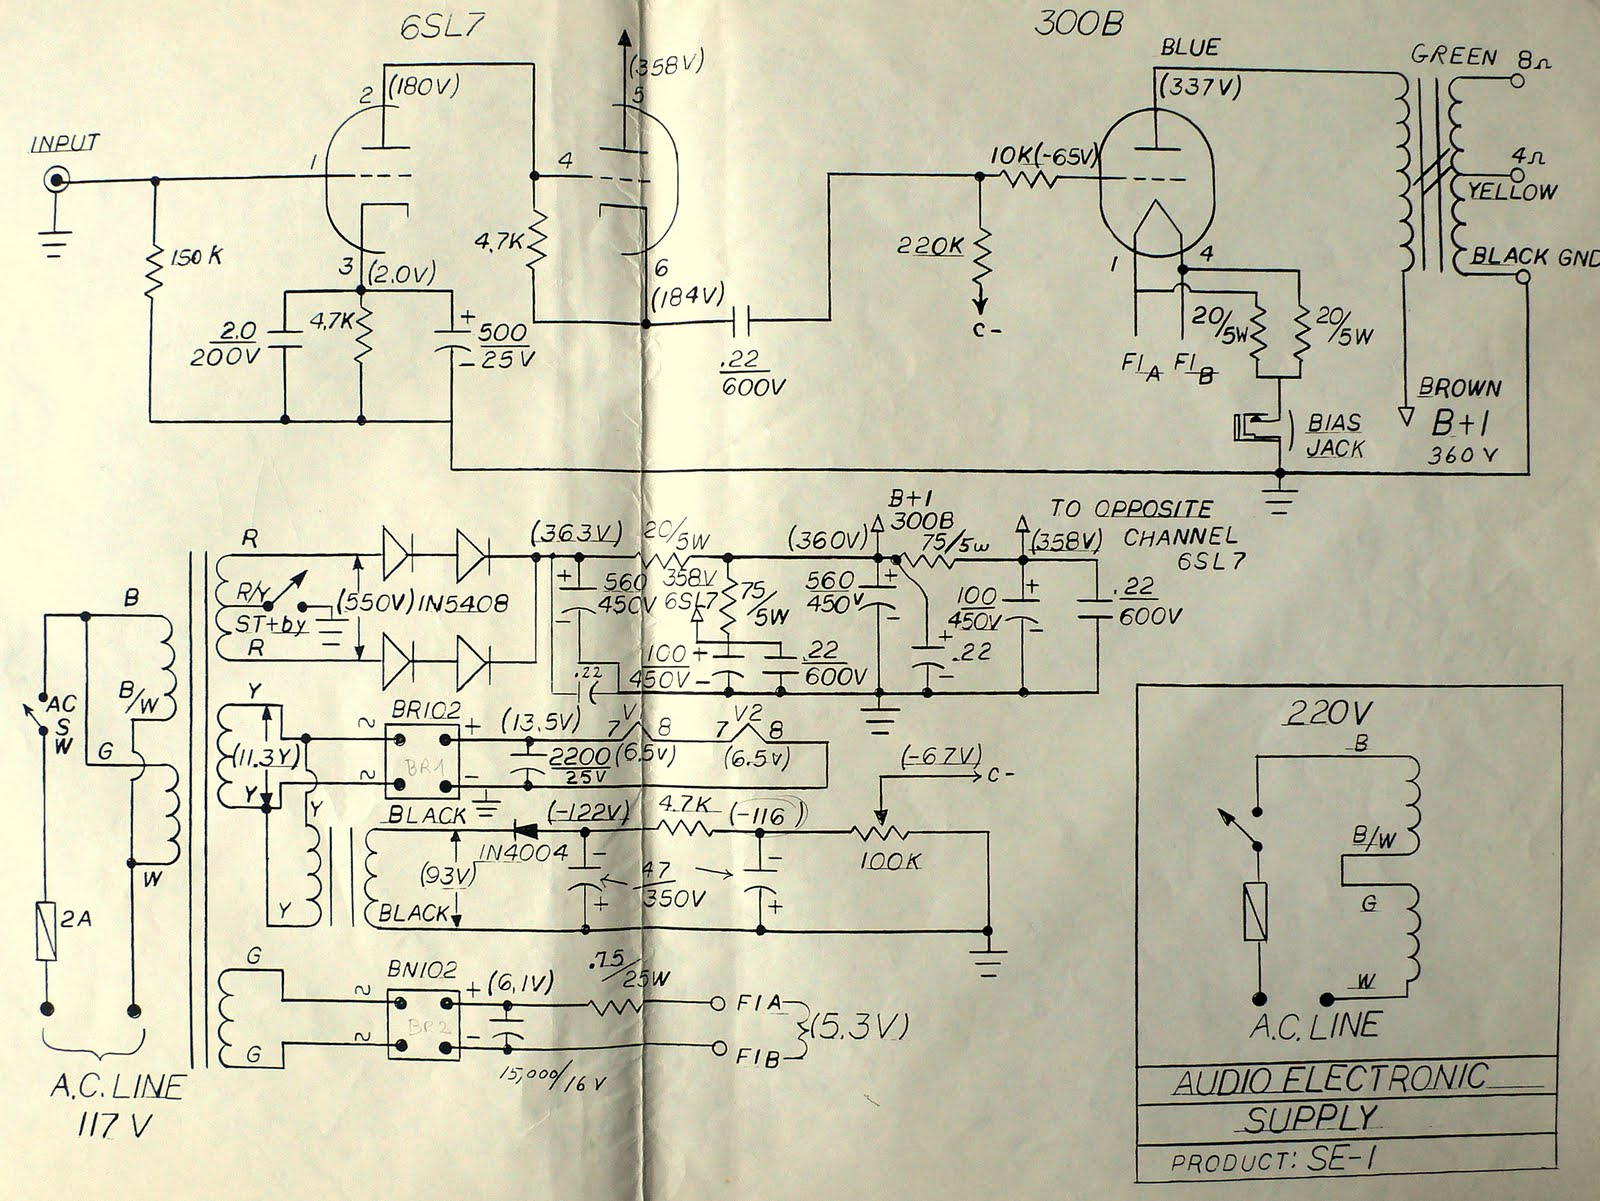 wrg 2785] linn k 5 cartridge wiring diagram  doctorjohn cheaptubeaudio audio reviews and more aes se 1 schematic and info